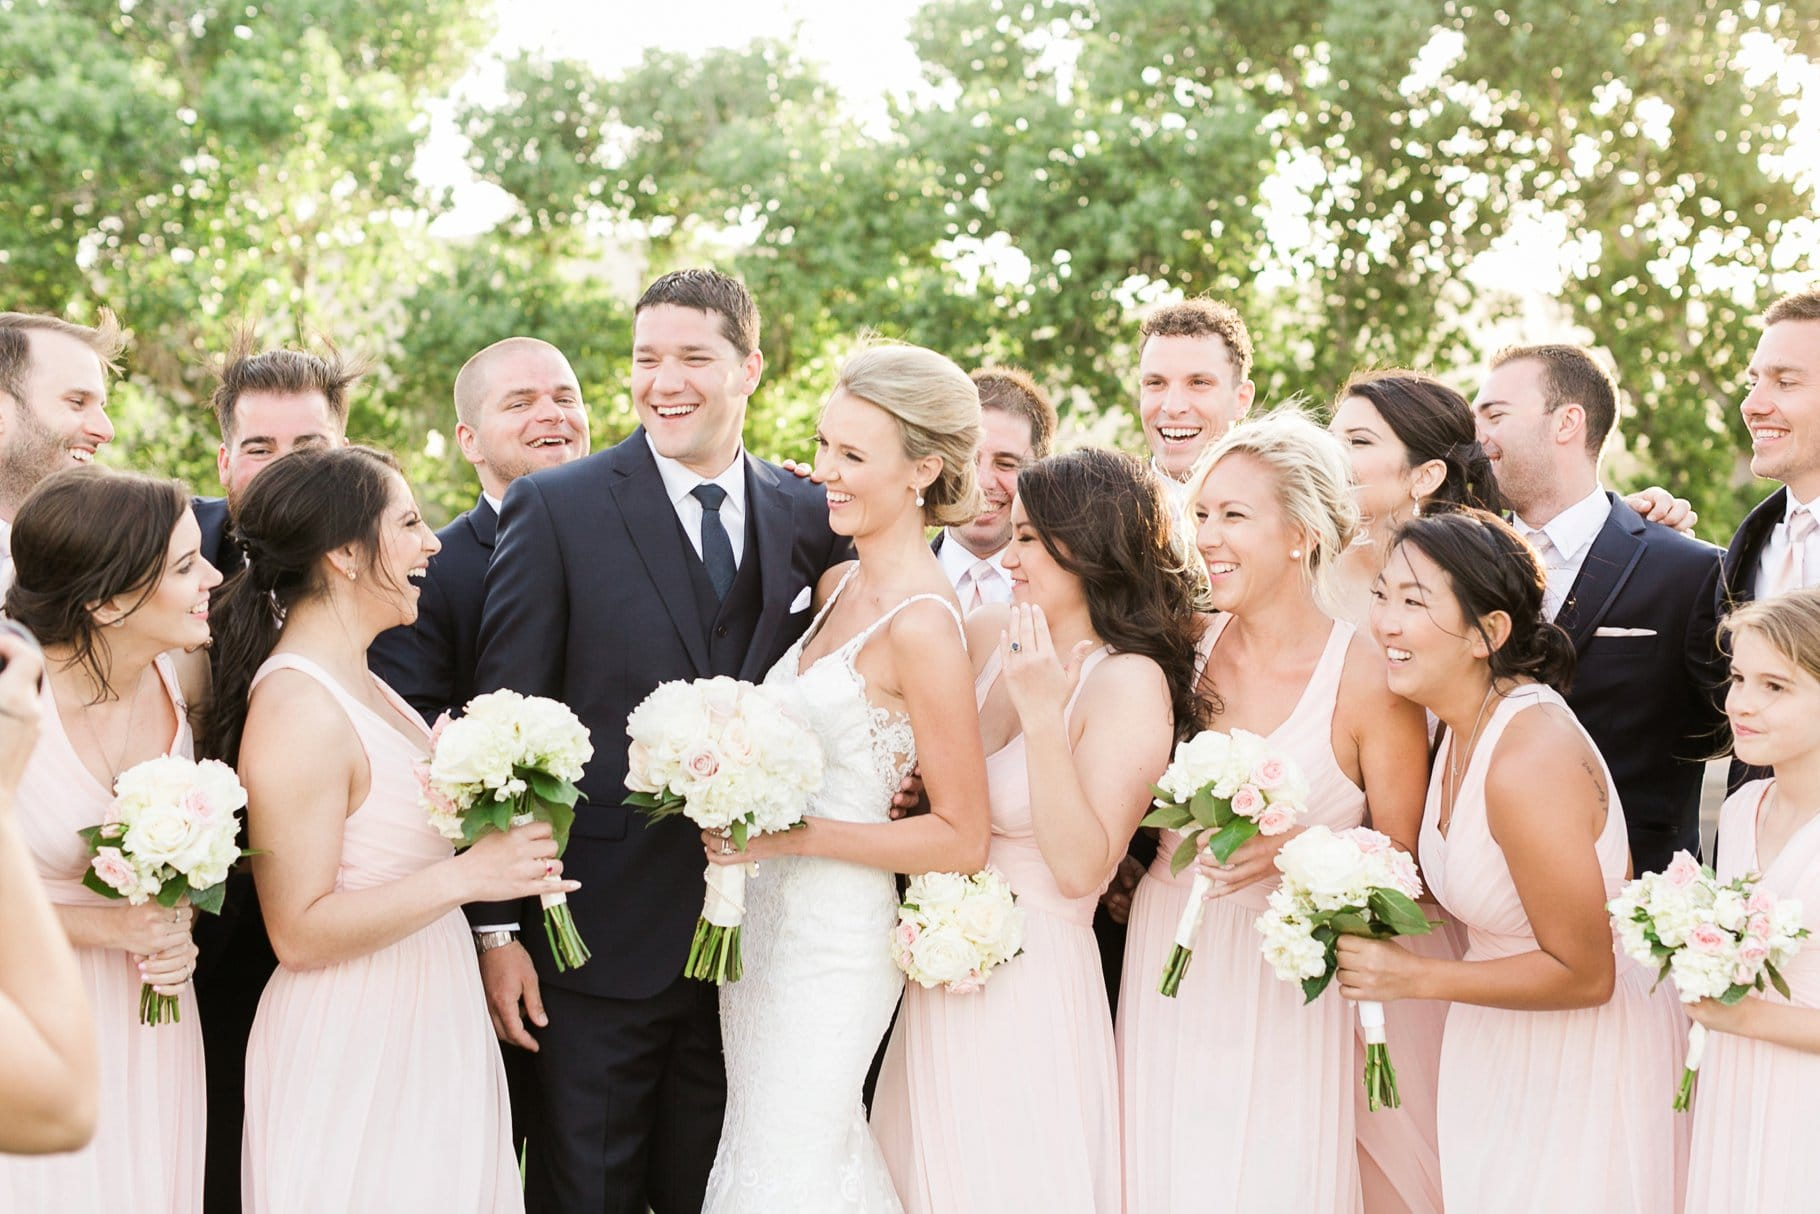 joyful wedding at Sedona Golf Resort